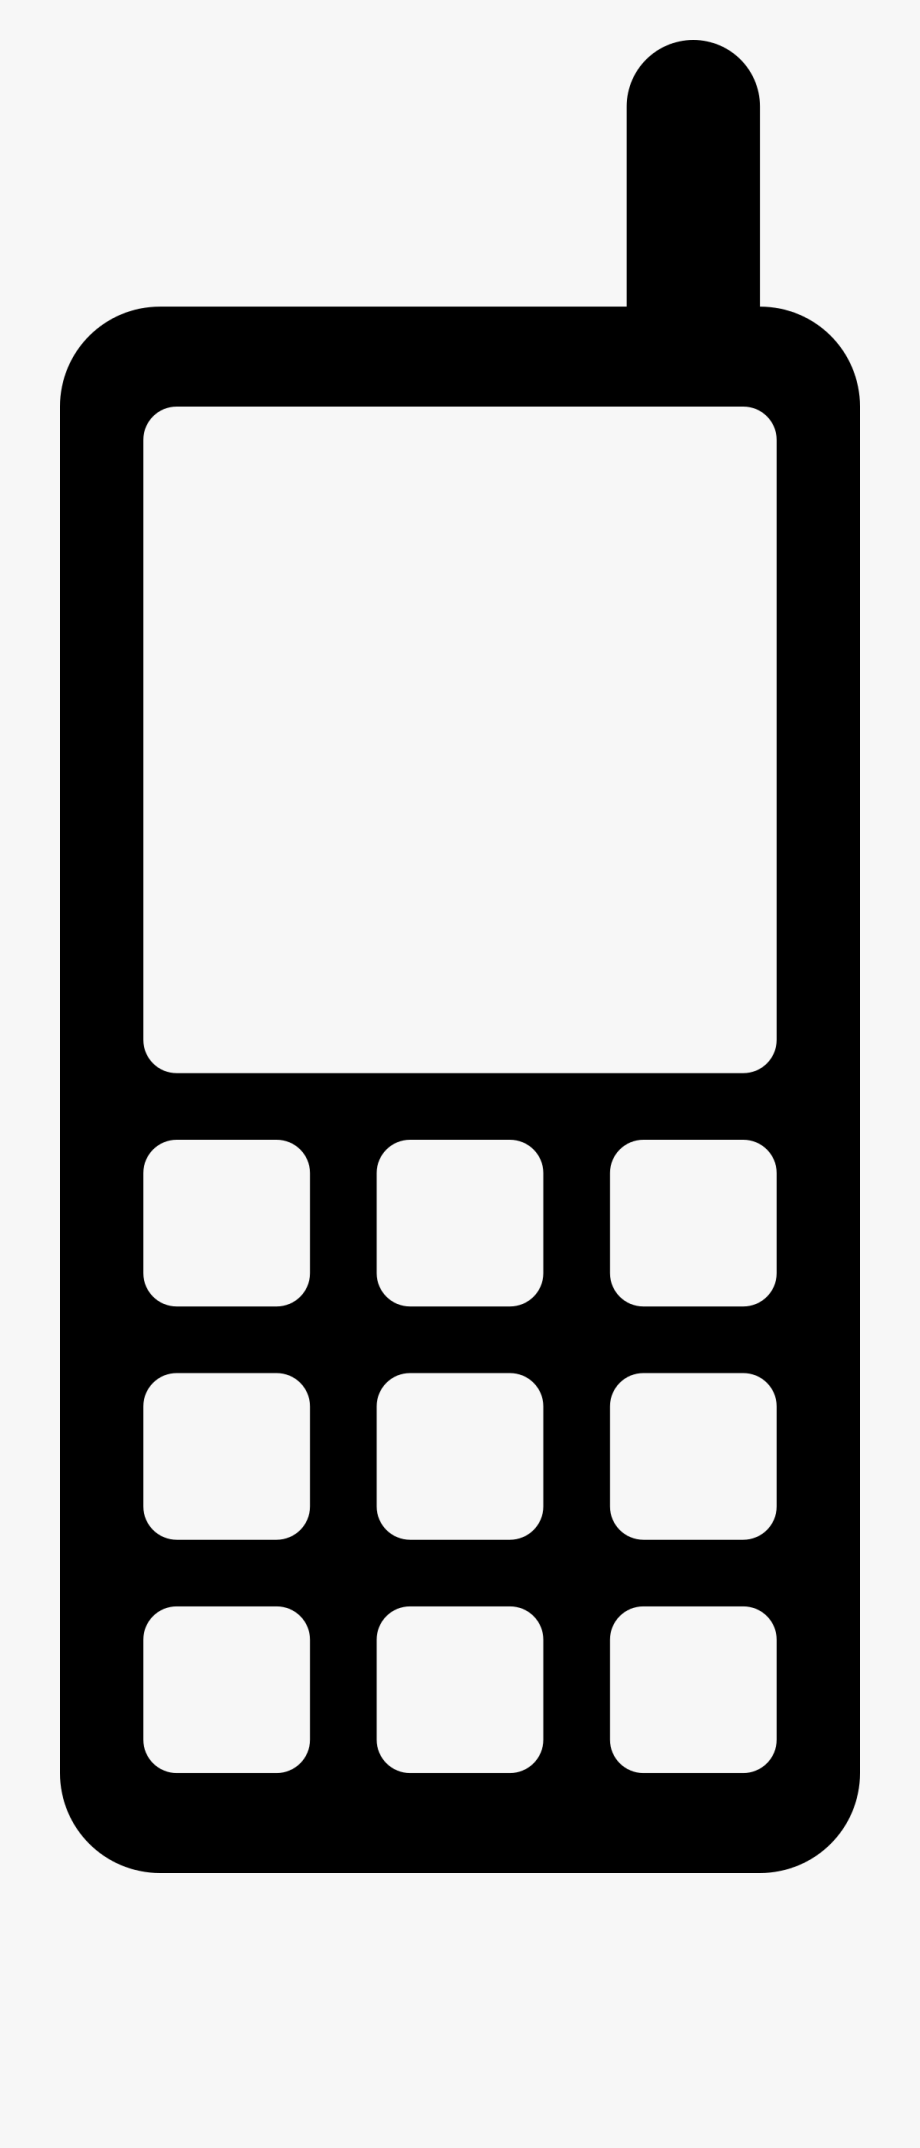 Phone icon clipart green jpg freeuse library Free Icons Png - Mobile Icon Png Green #336139 - Free ... jpg freeuse library